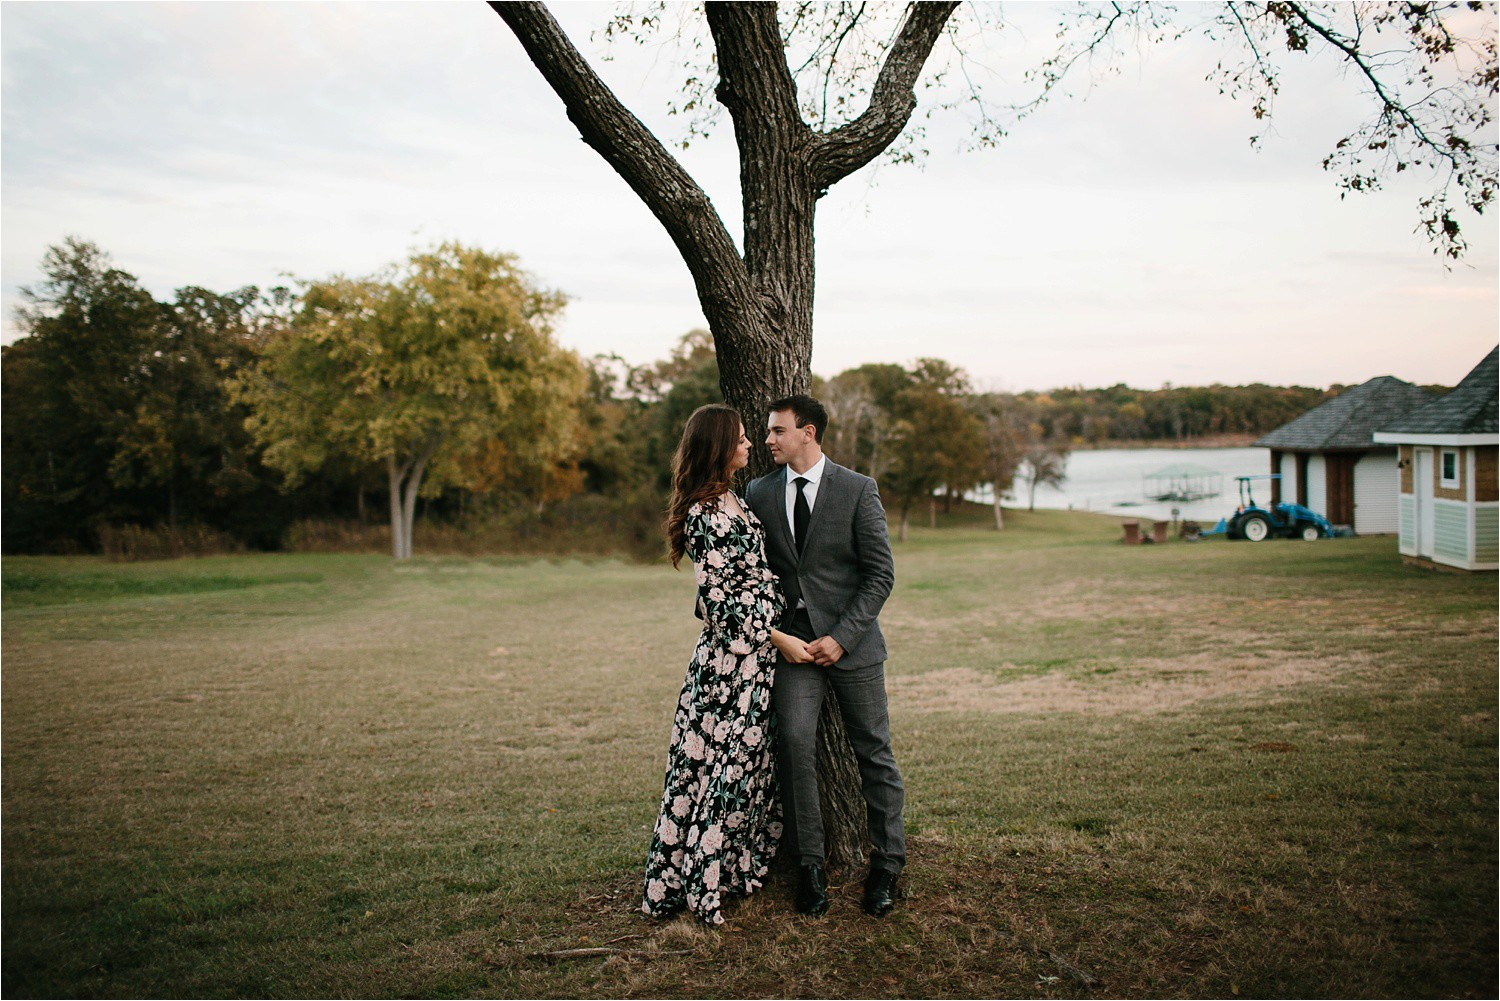 Aleta + Sabian __ a windy lakeside nature engagement session by North Texas Wedding Photographer Rachel Meagan Photography _49